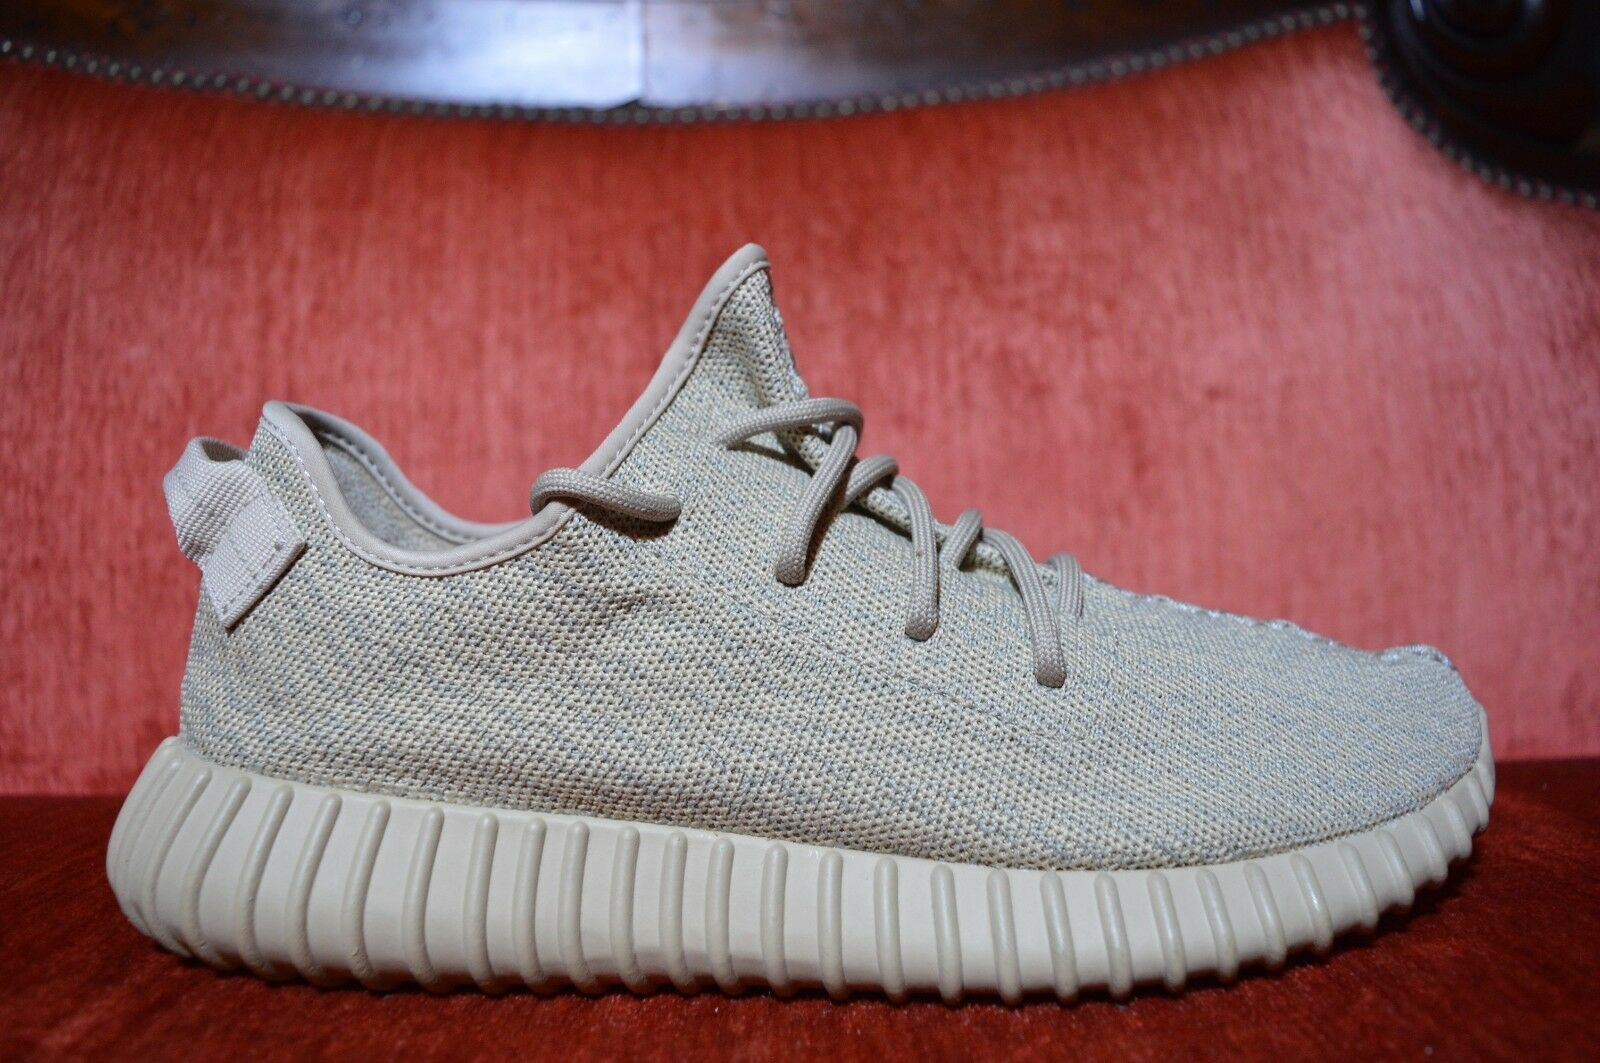 Taille Ah2203 668ded V2 Boost 10 Beluga Yeezy Adidas dXvPAxX